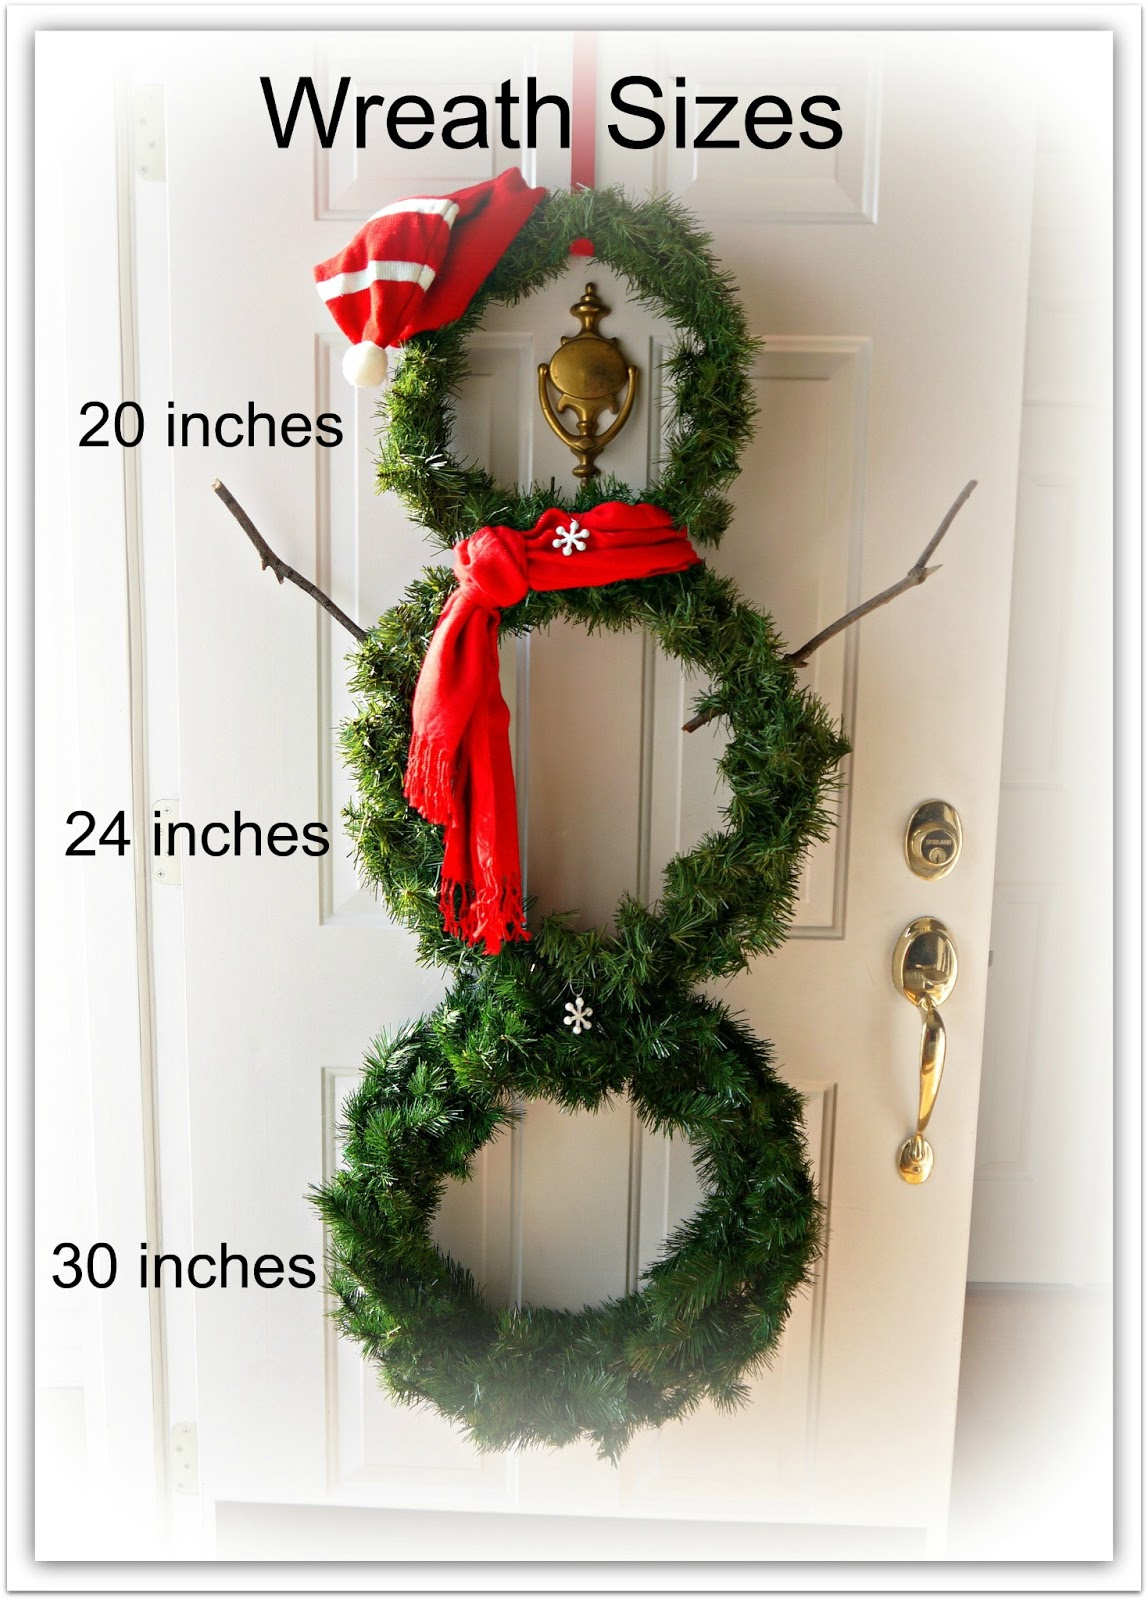 Diy Versatile Snowman Wreath For Winter Decor Sweet Little Bluebird